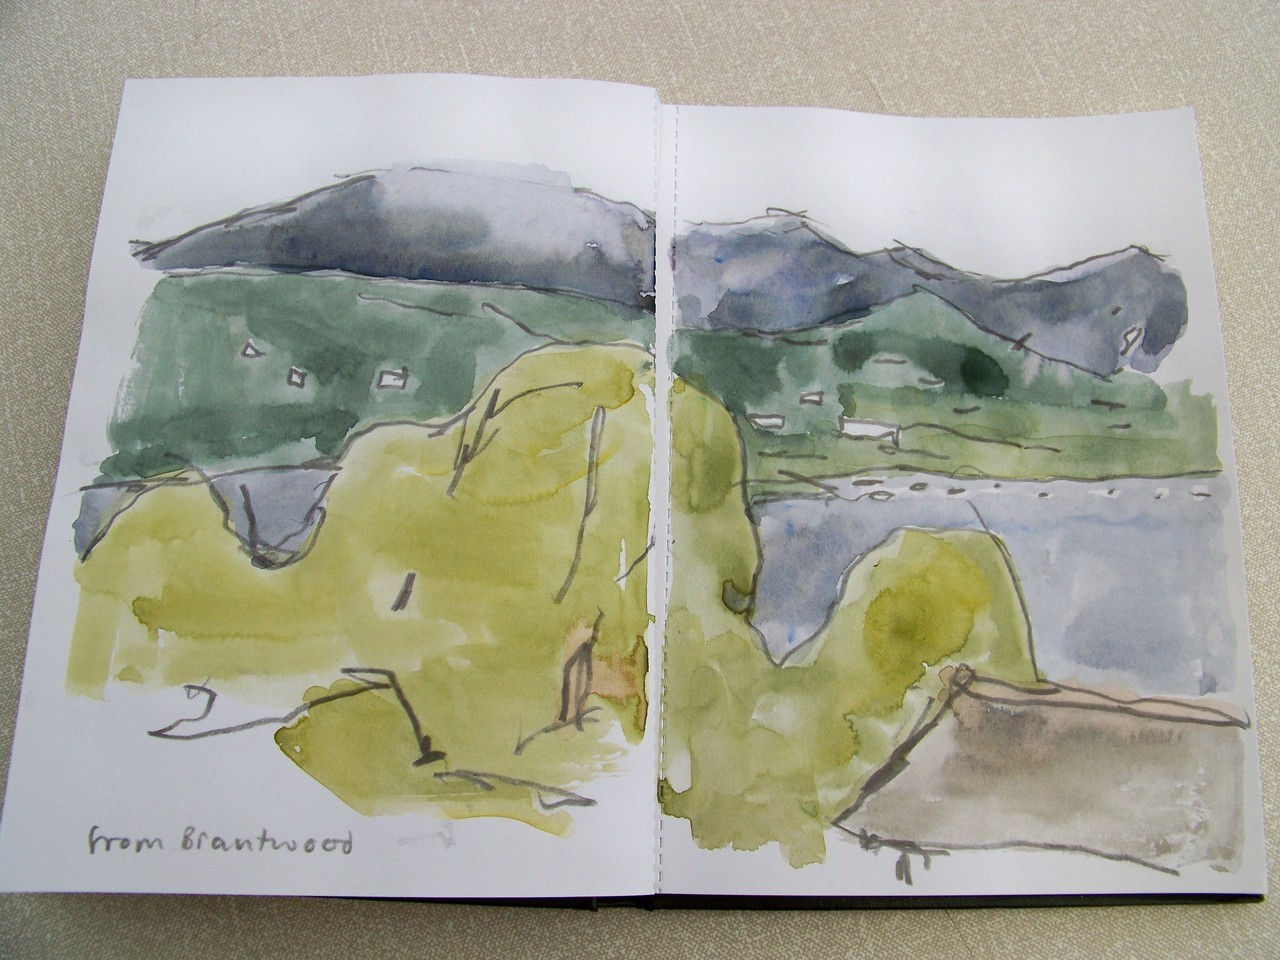 25th June 2012. Back from a weekend in Kendal, Cumbria attending the opening of 'Bacon to Rego' at Abbot Hall. A great weekend despite almost continual rain. This is a watercolour from above Coniston Water.